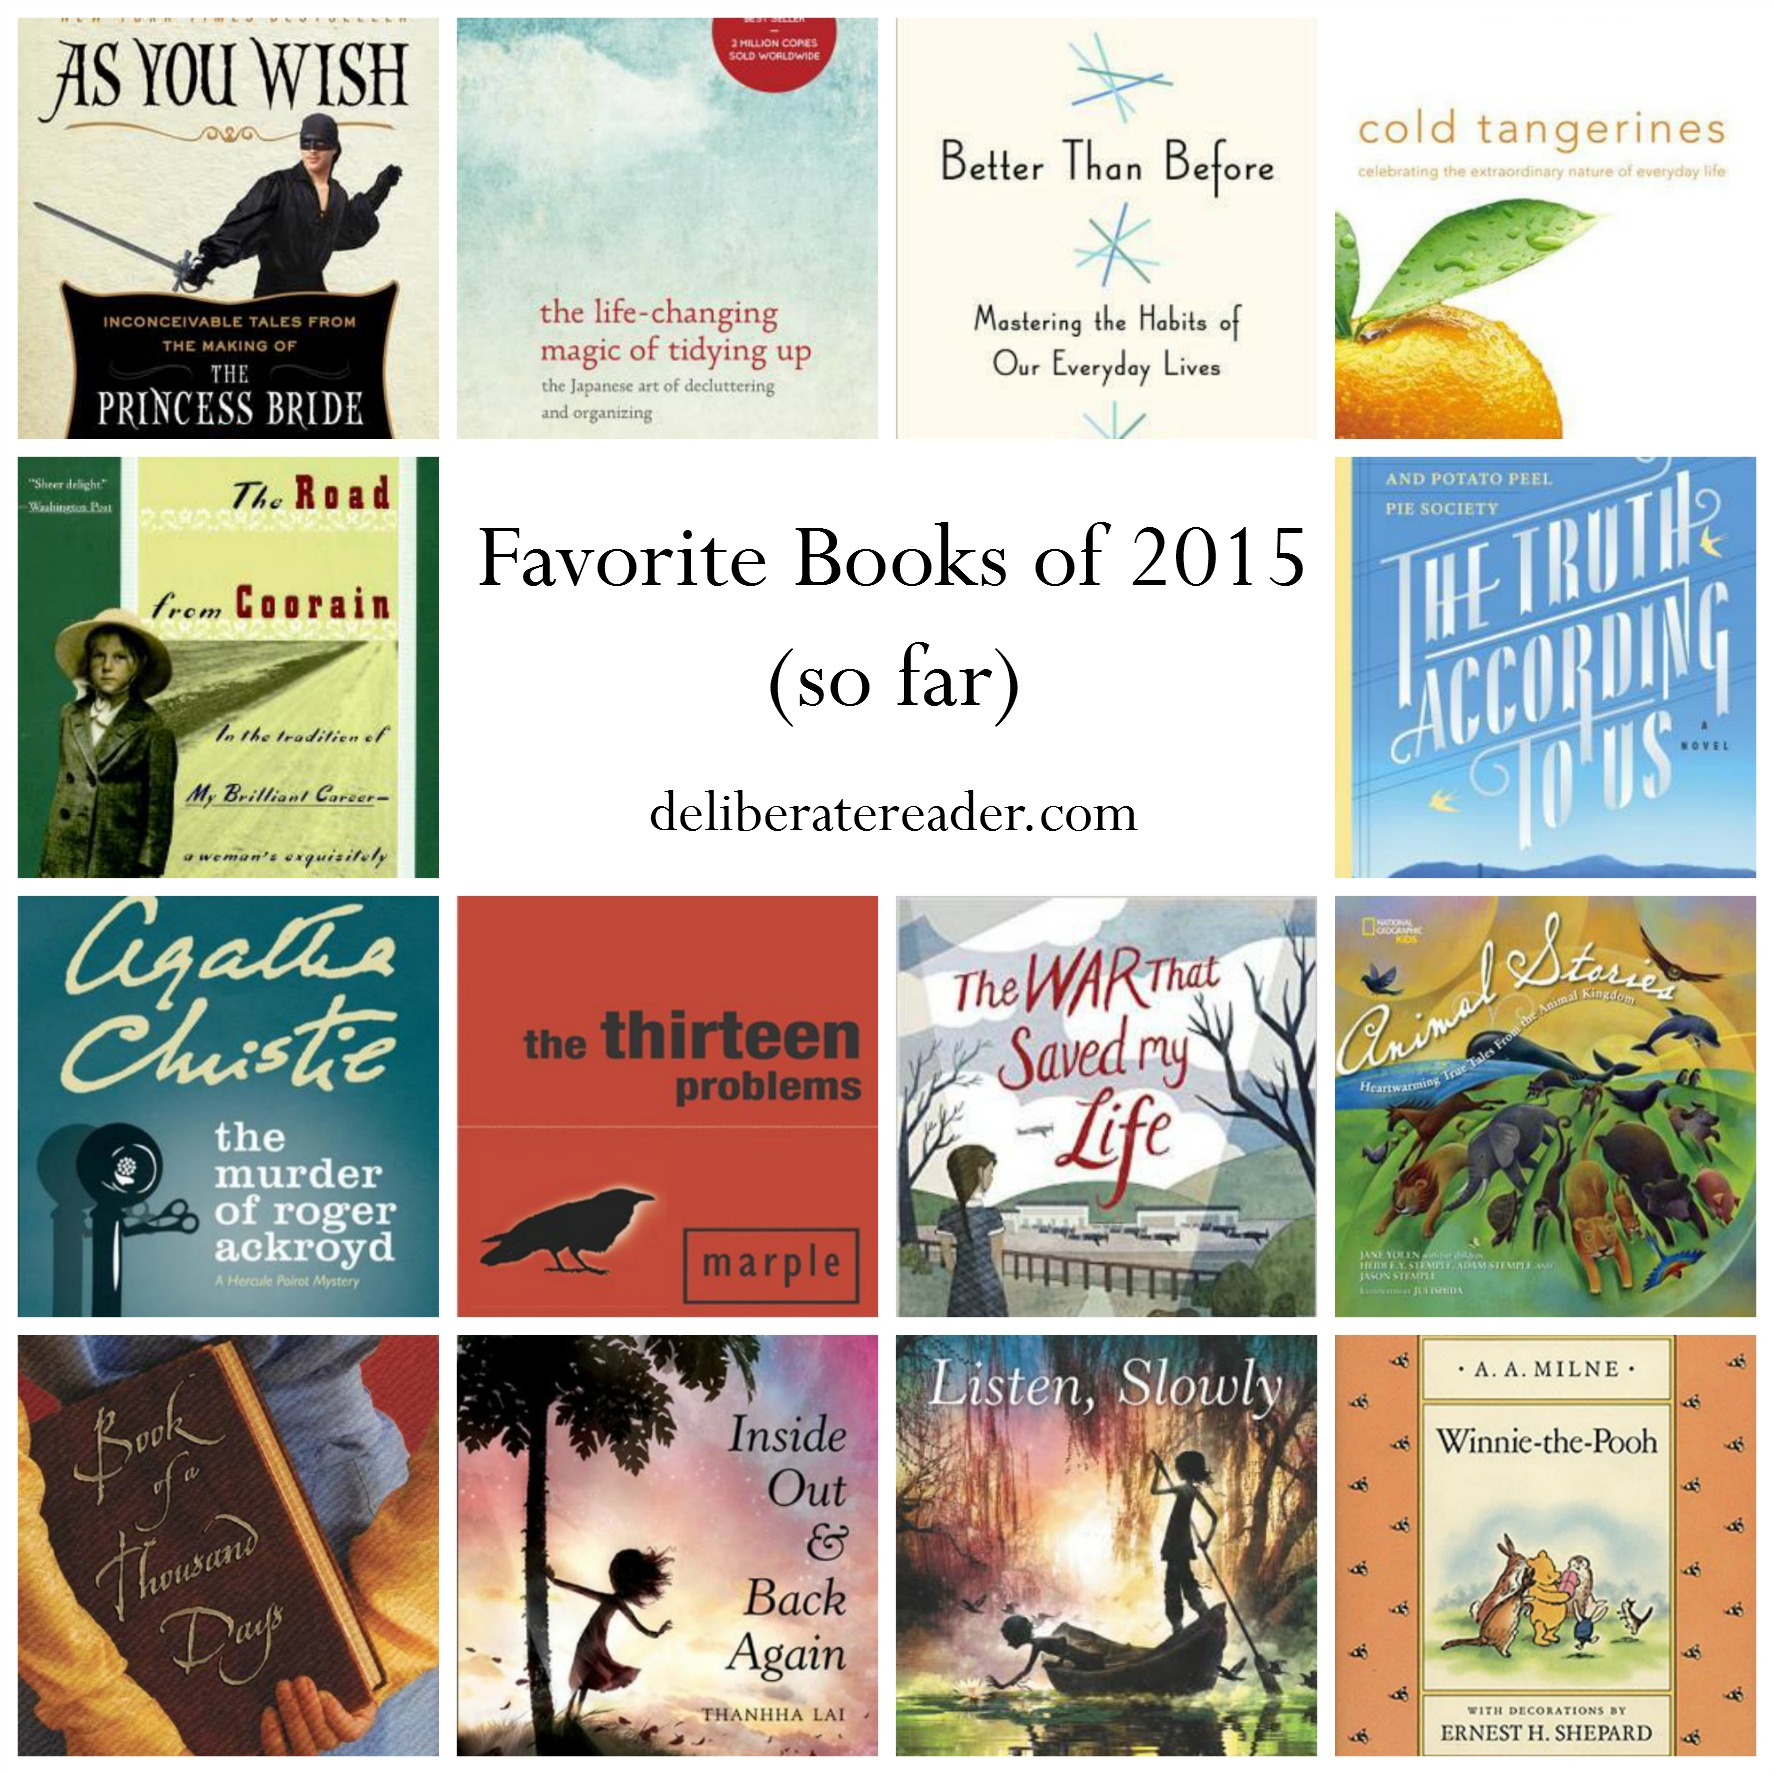 Favorite Books of 2015 so far